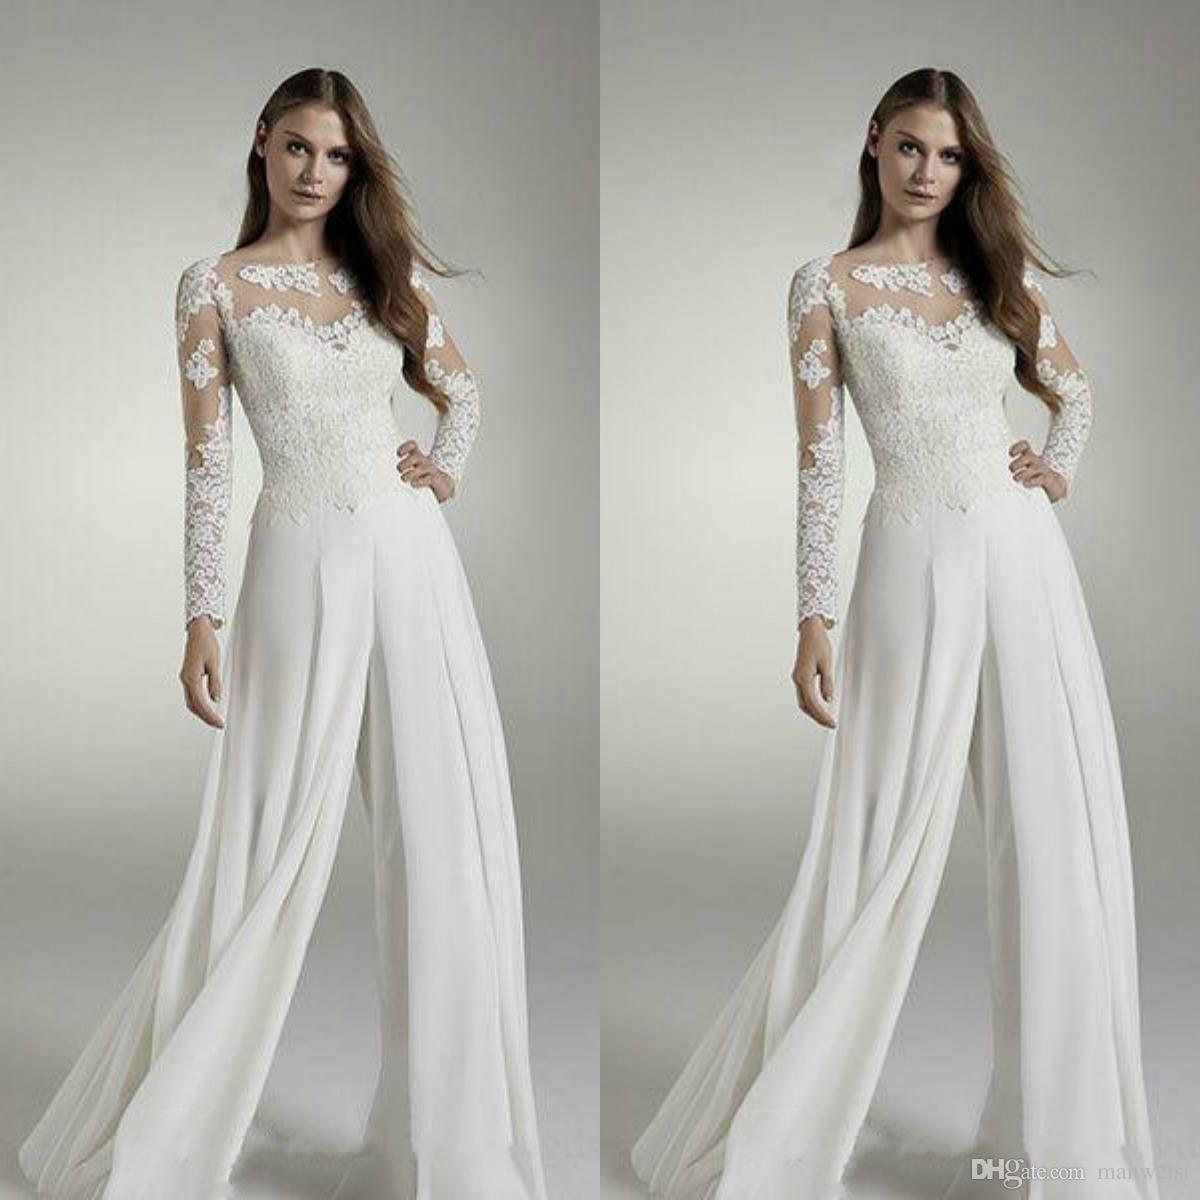 1c990f1a6eb Discount Zuhair Murad Jumpsuits 2019 Wedding Dresses Long Sleeve Lace  Appliqued Bridal Gowns Chiffon Suits Wedding Dress Reception Designer Cheap  Off The ...